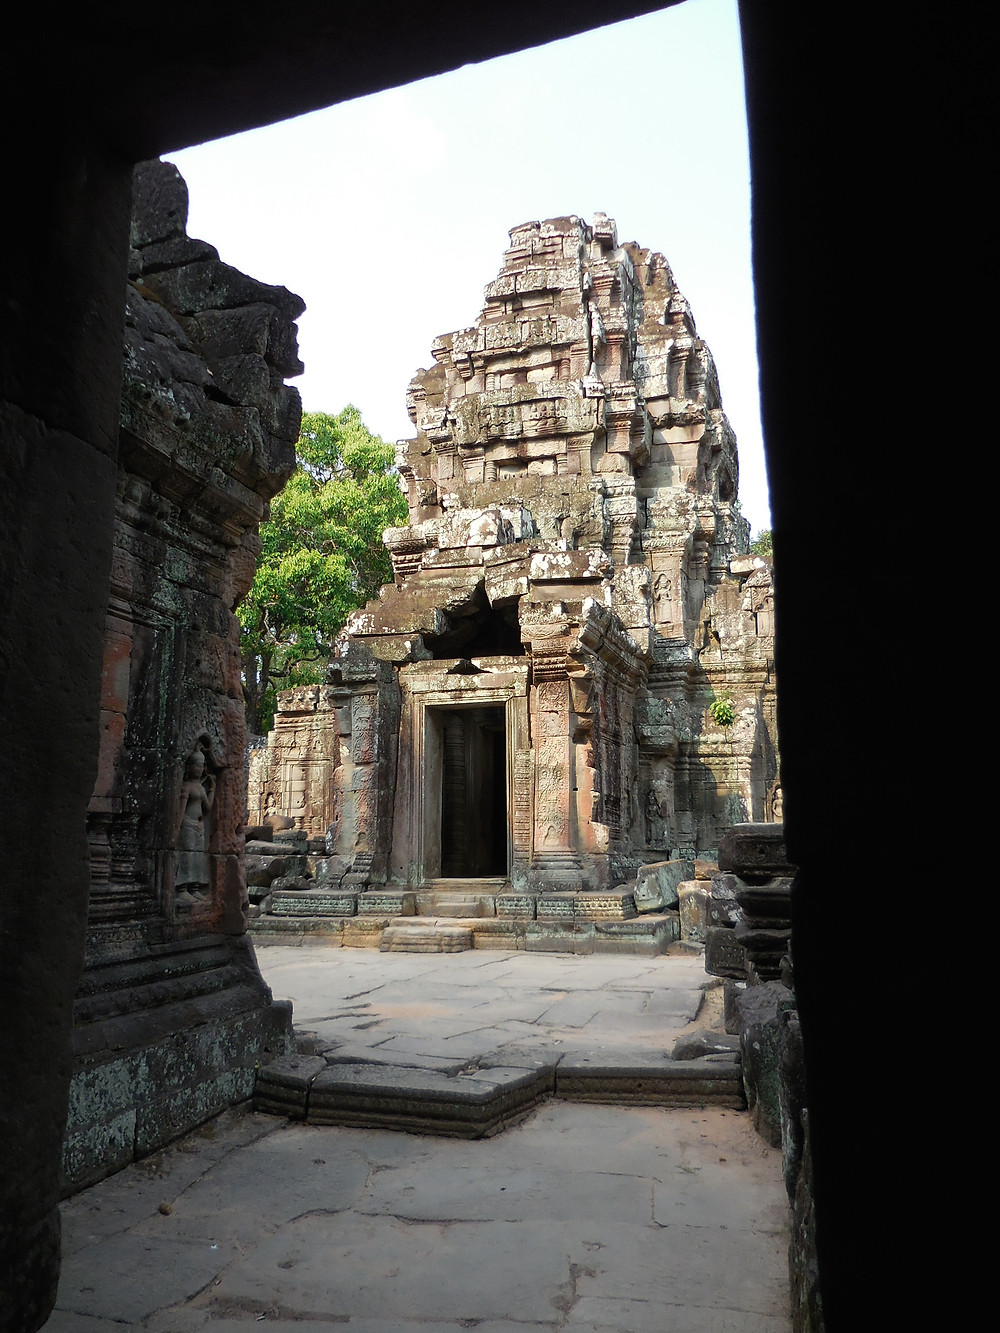 Built in the late 12th century, Ta Som has numerous corridors to walk through